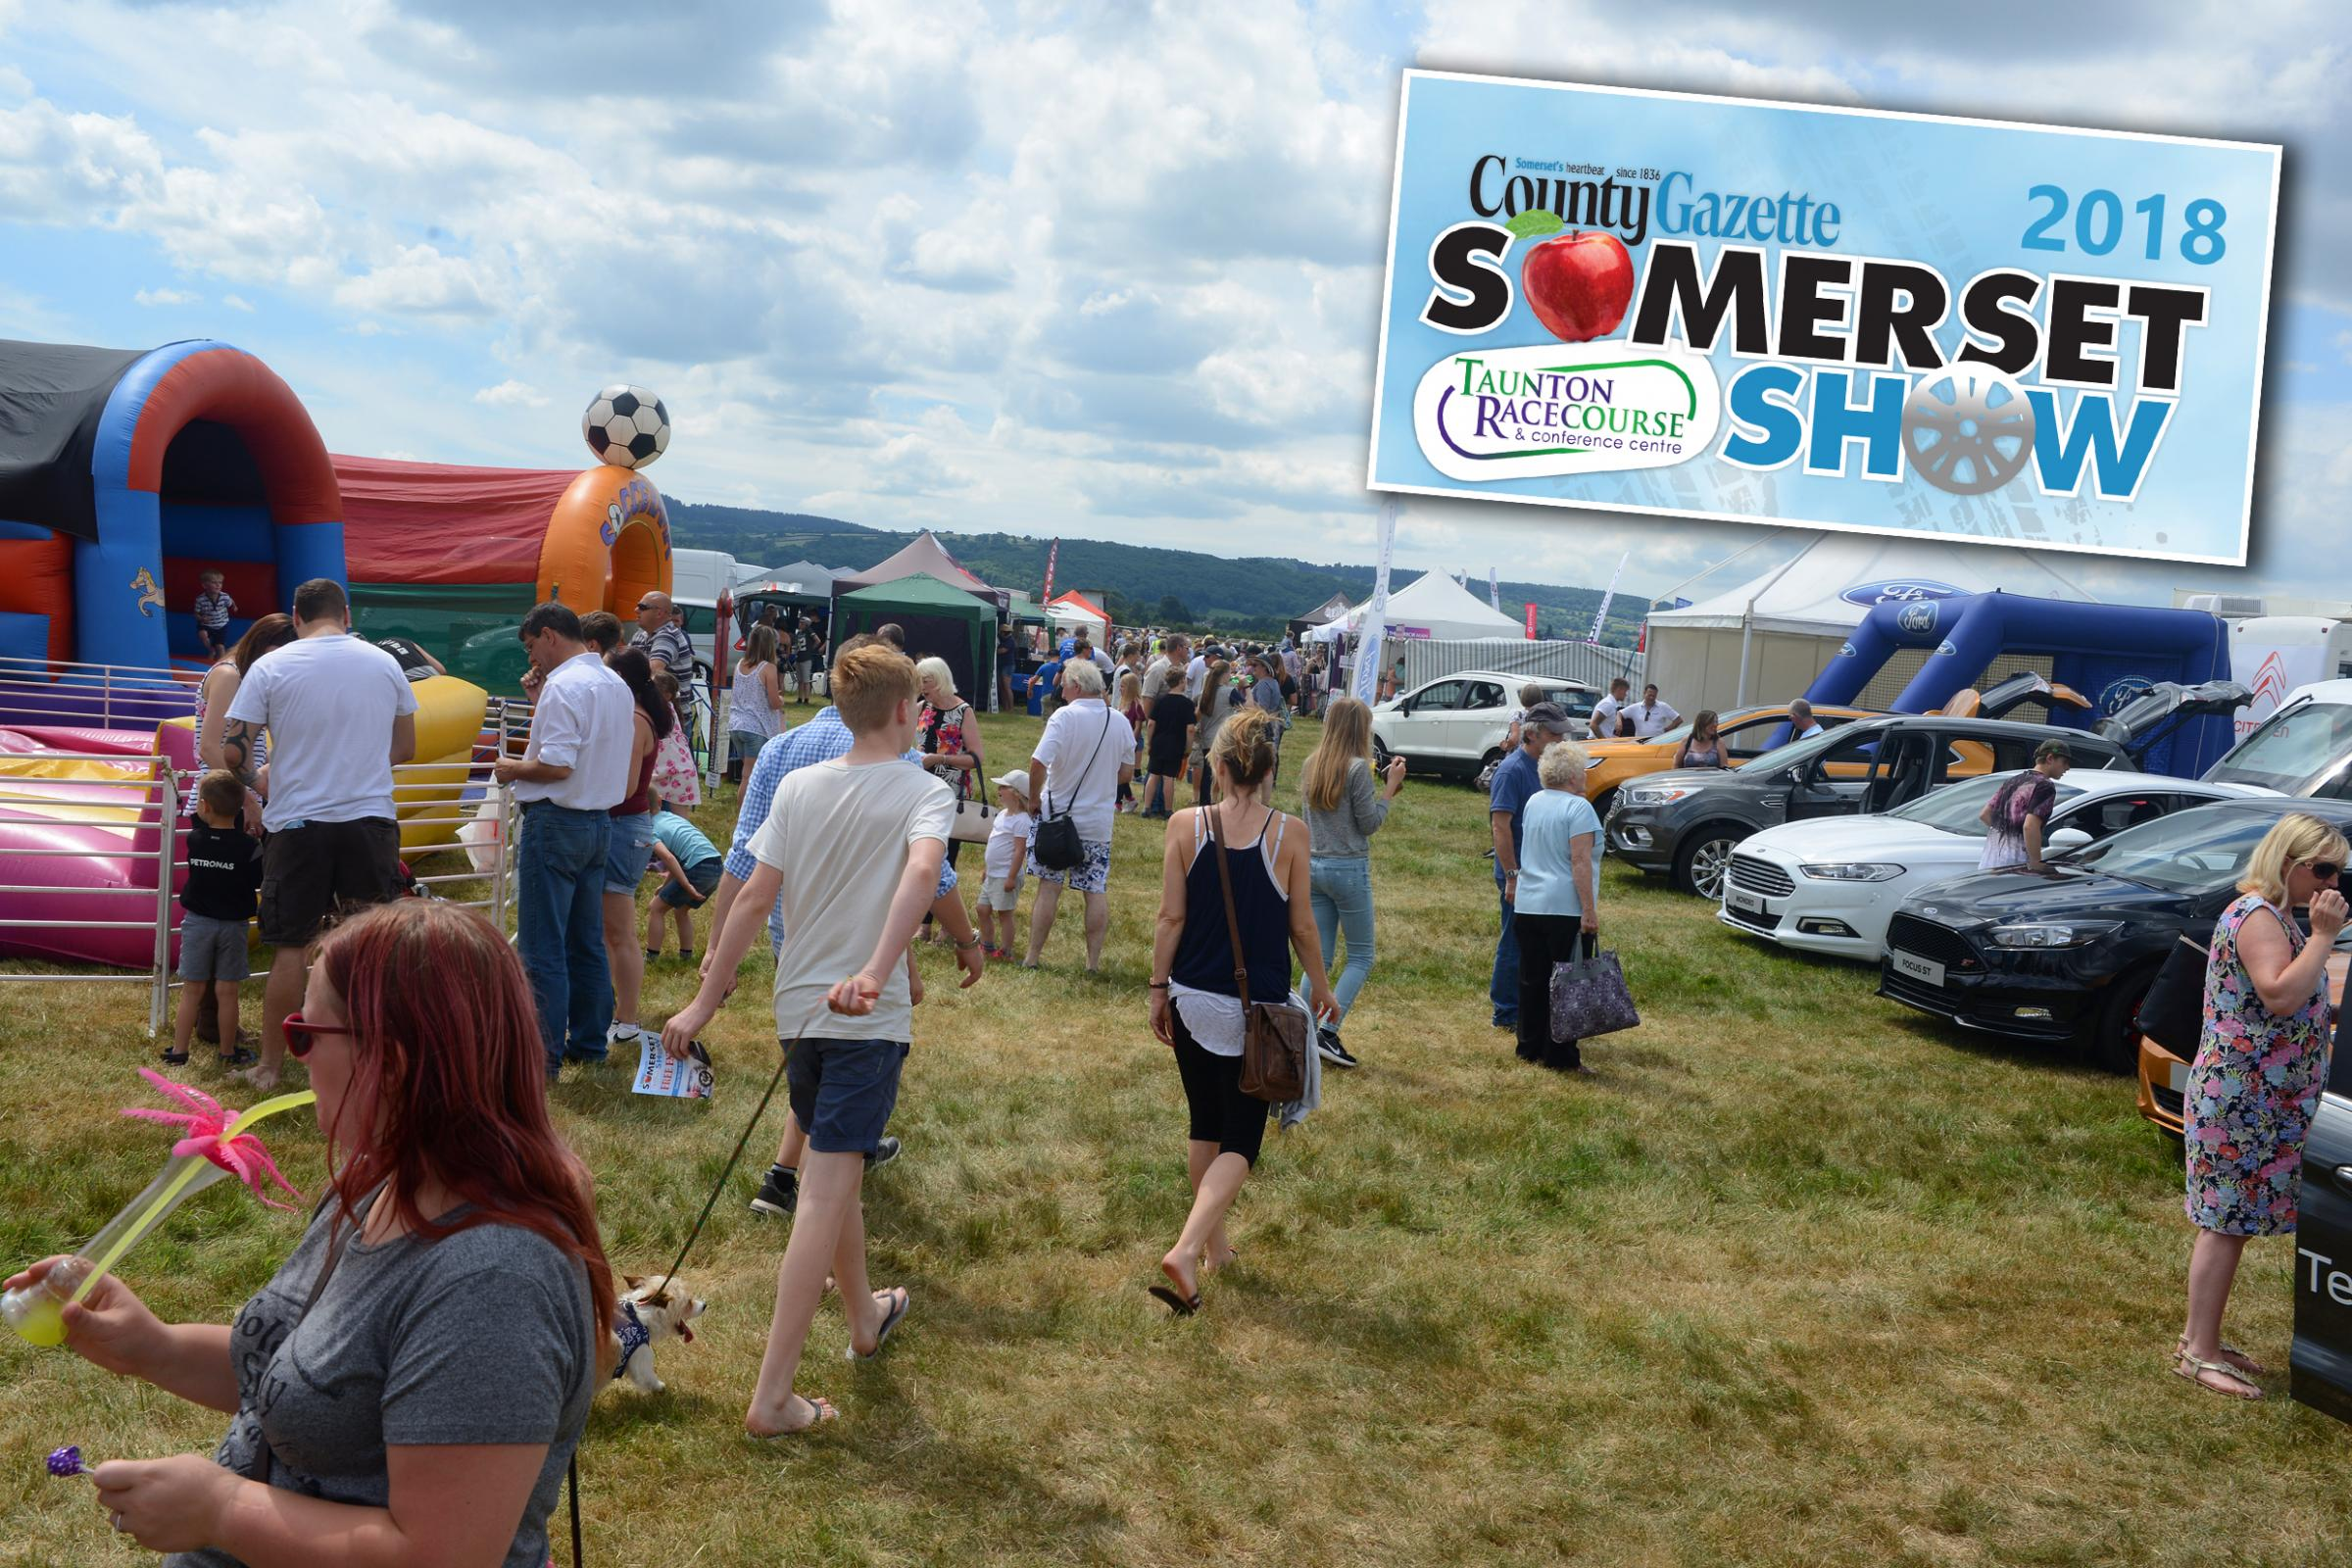 SOMERSET SHOW County Gazette launches 2018 event at Taunton